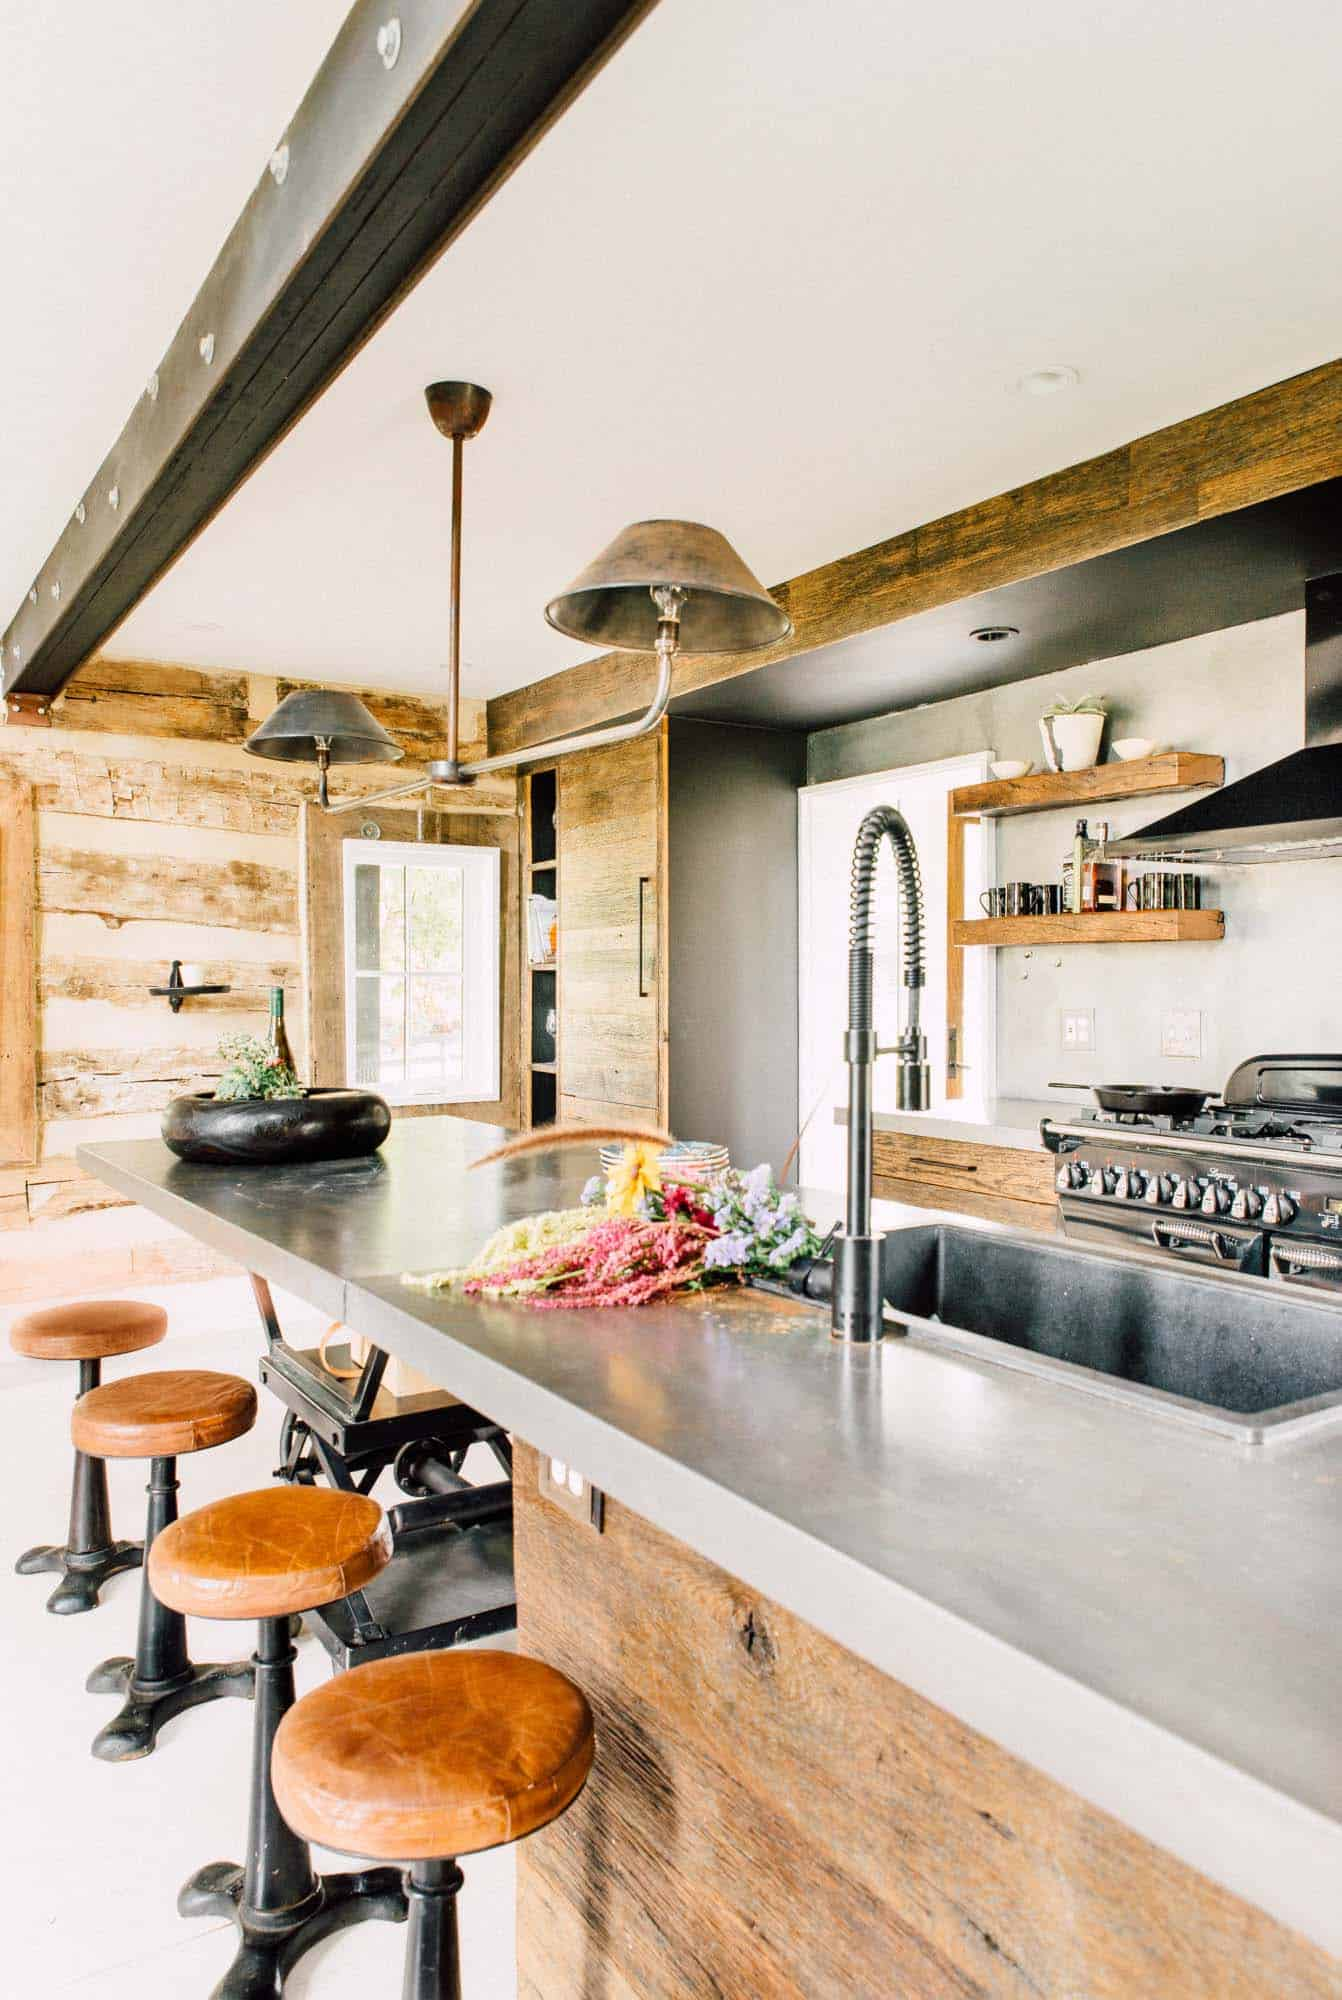 Modernized Historic Farmhouse-Cortney Bishop-07-1 Kindesign